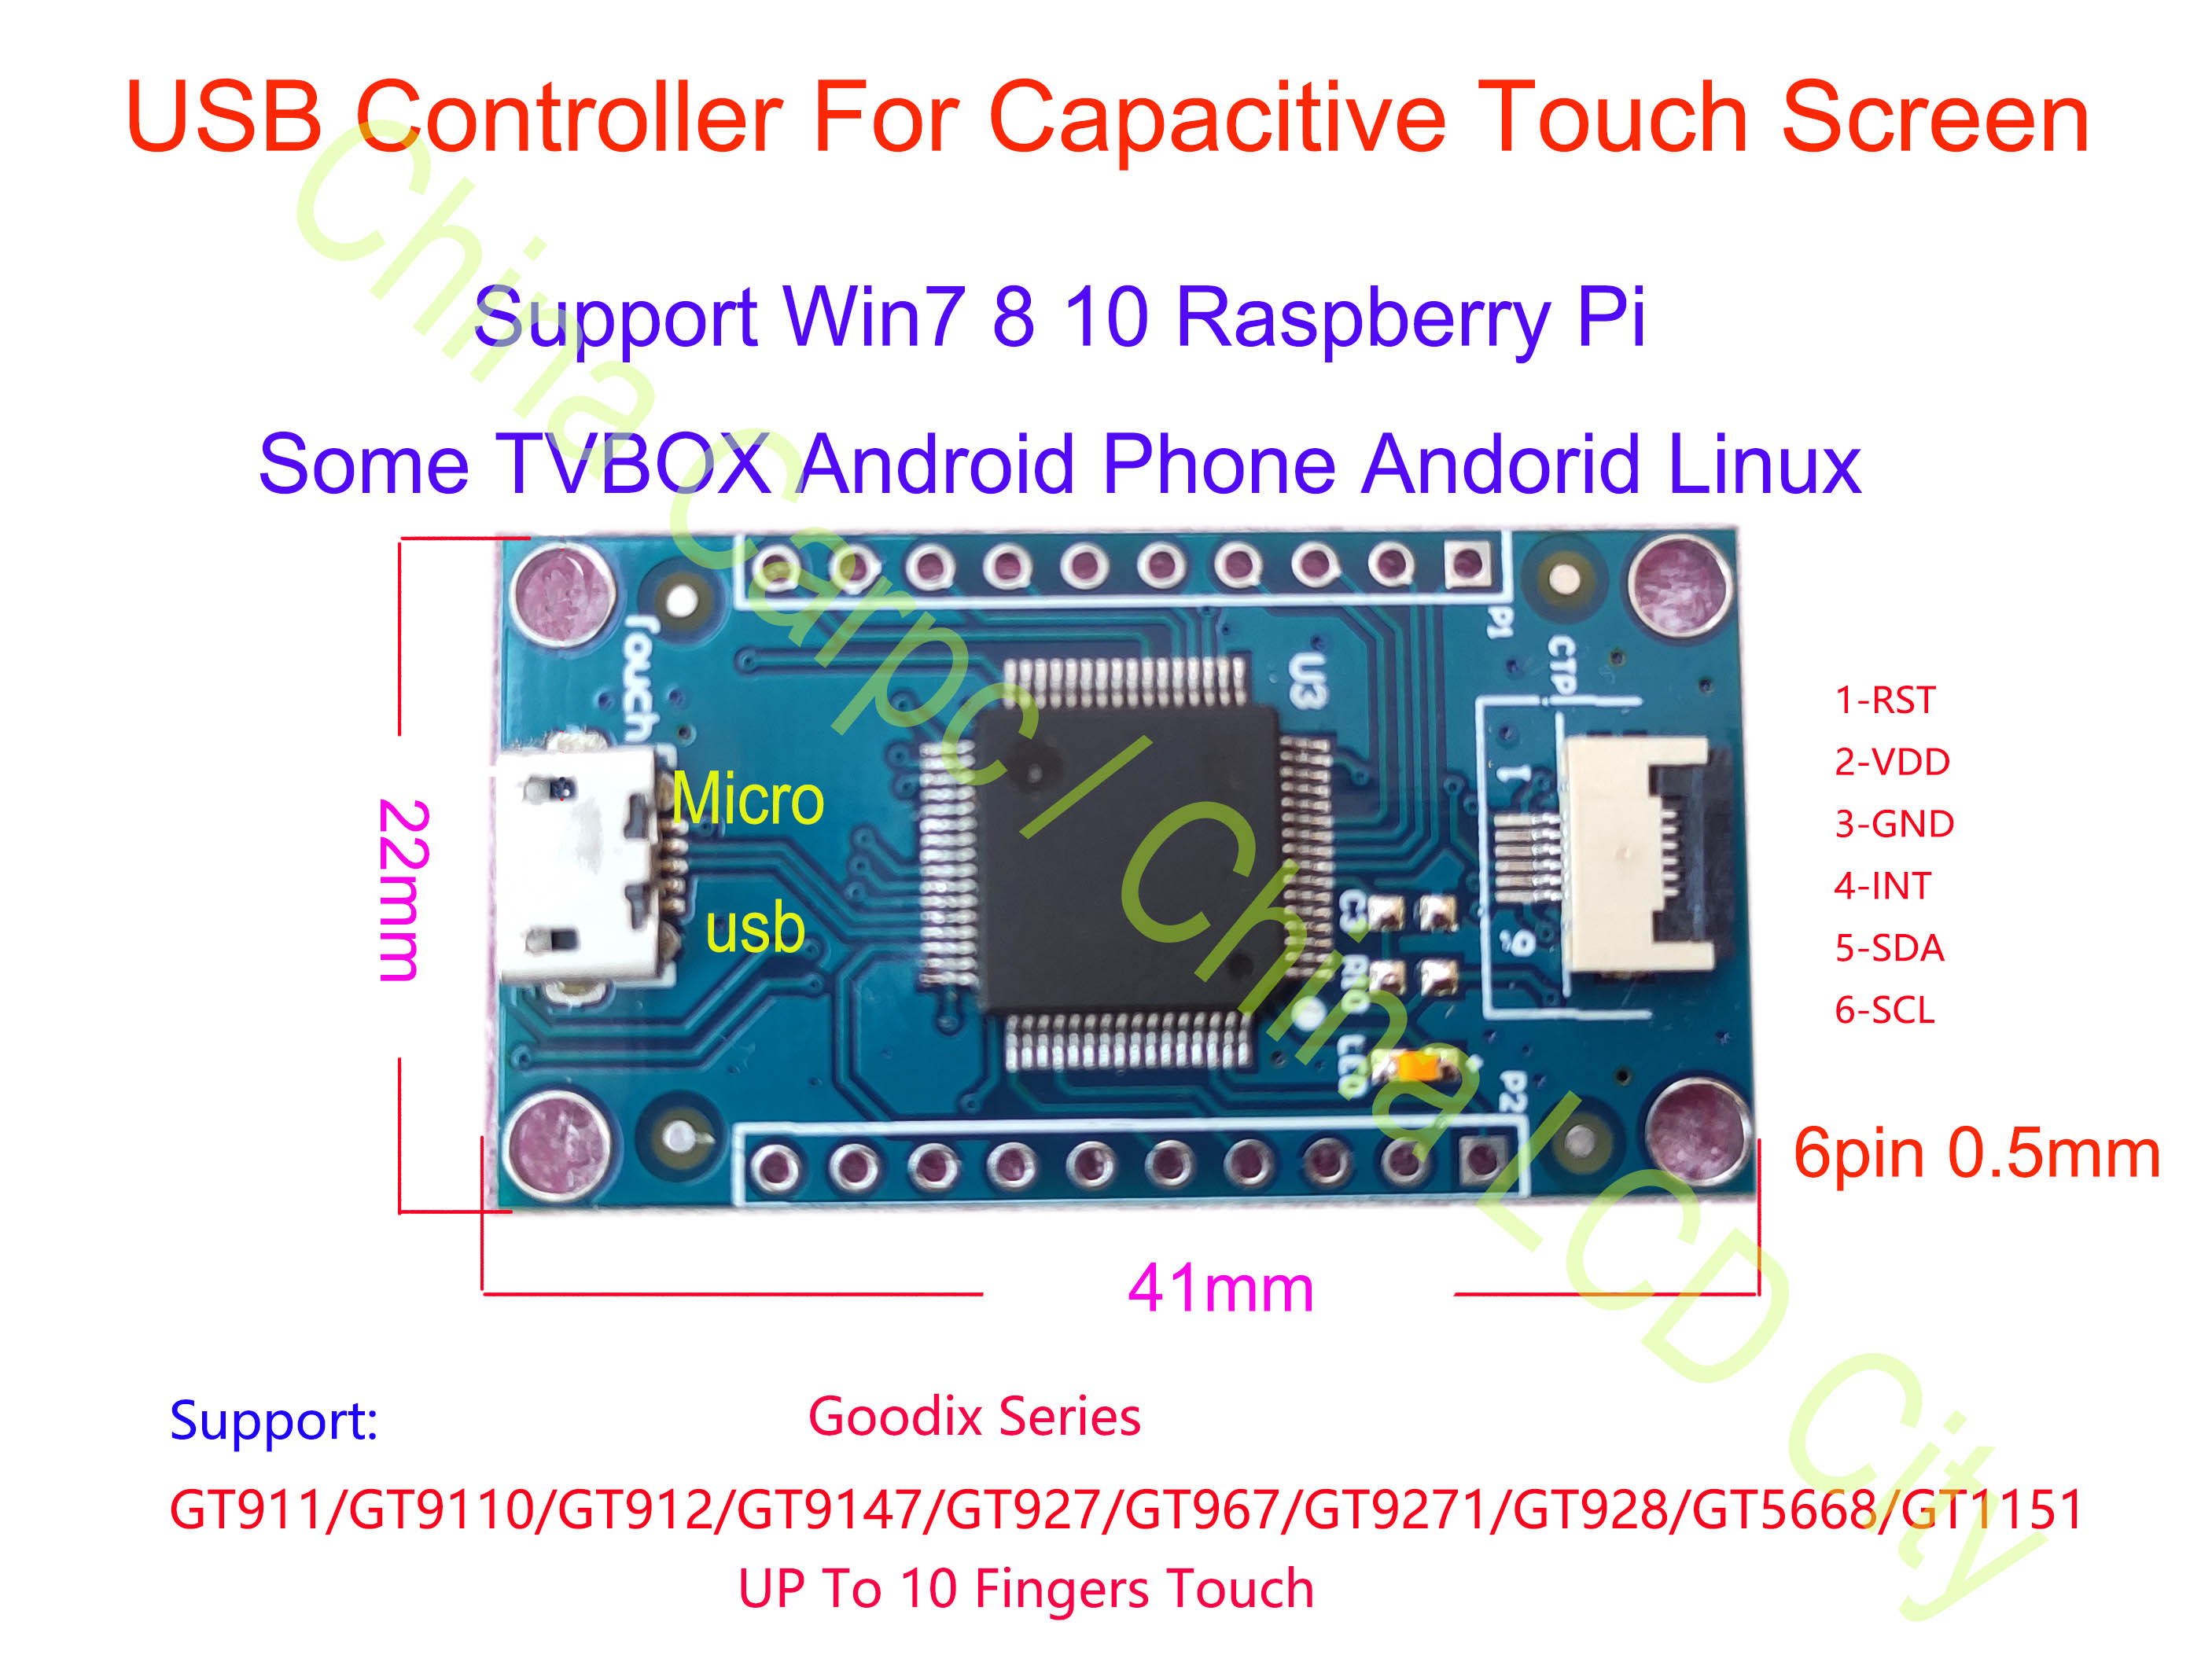 USB Controller For Capacitive Touch Screen GT911/GT910/GT912/GT928/GT9271/GT9110/GT5668/GT1151/GT967/GT9147 Win8 10 Raspberry Pi